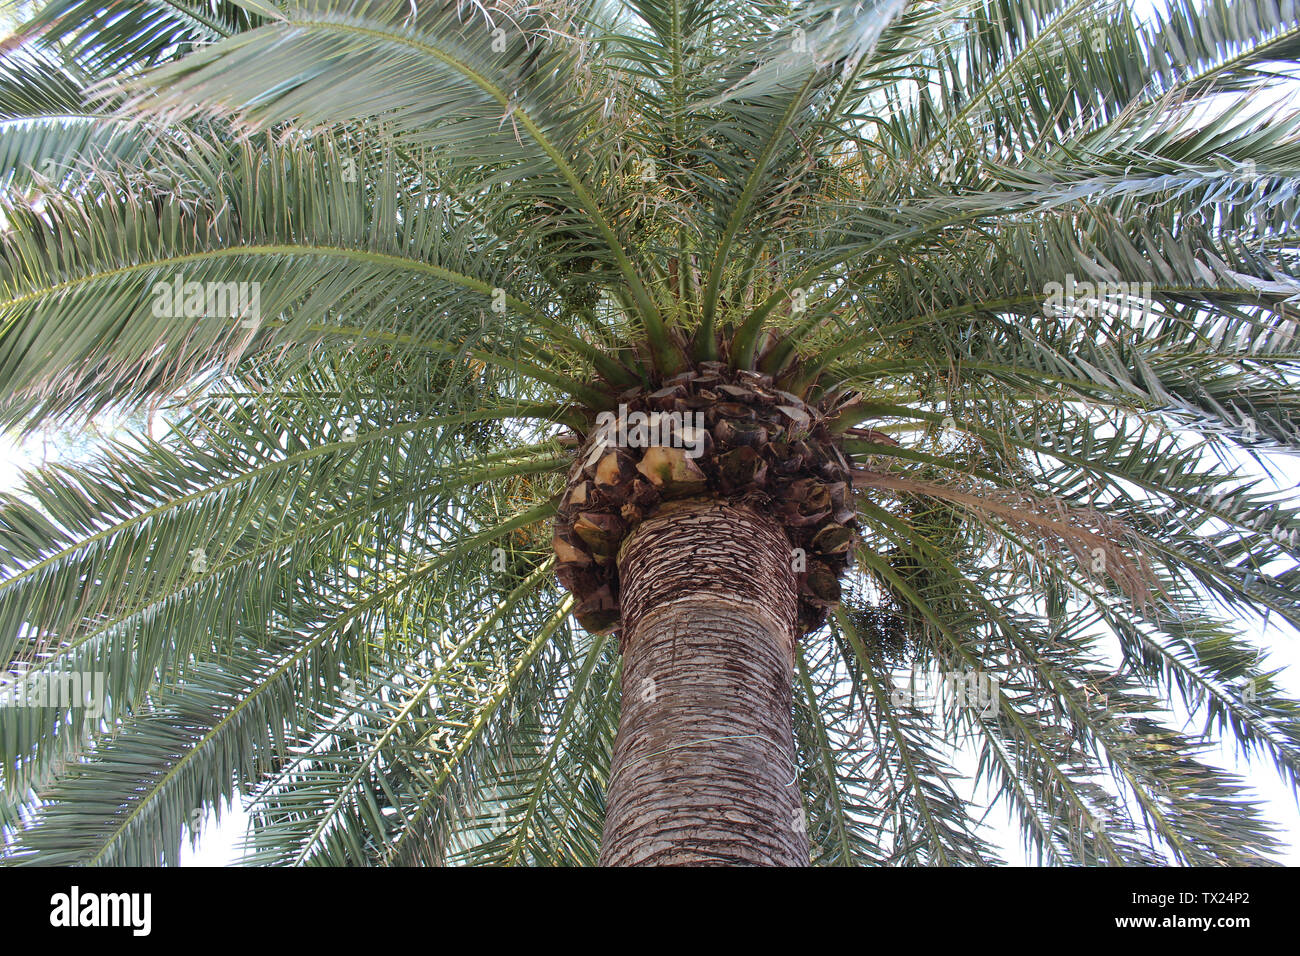 Rapallo, Italy - 03 27 2013: Palm trees, View of the streets of Rapallo - Stock Image